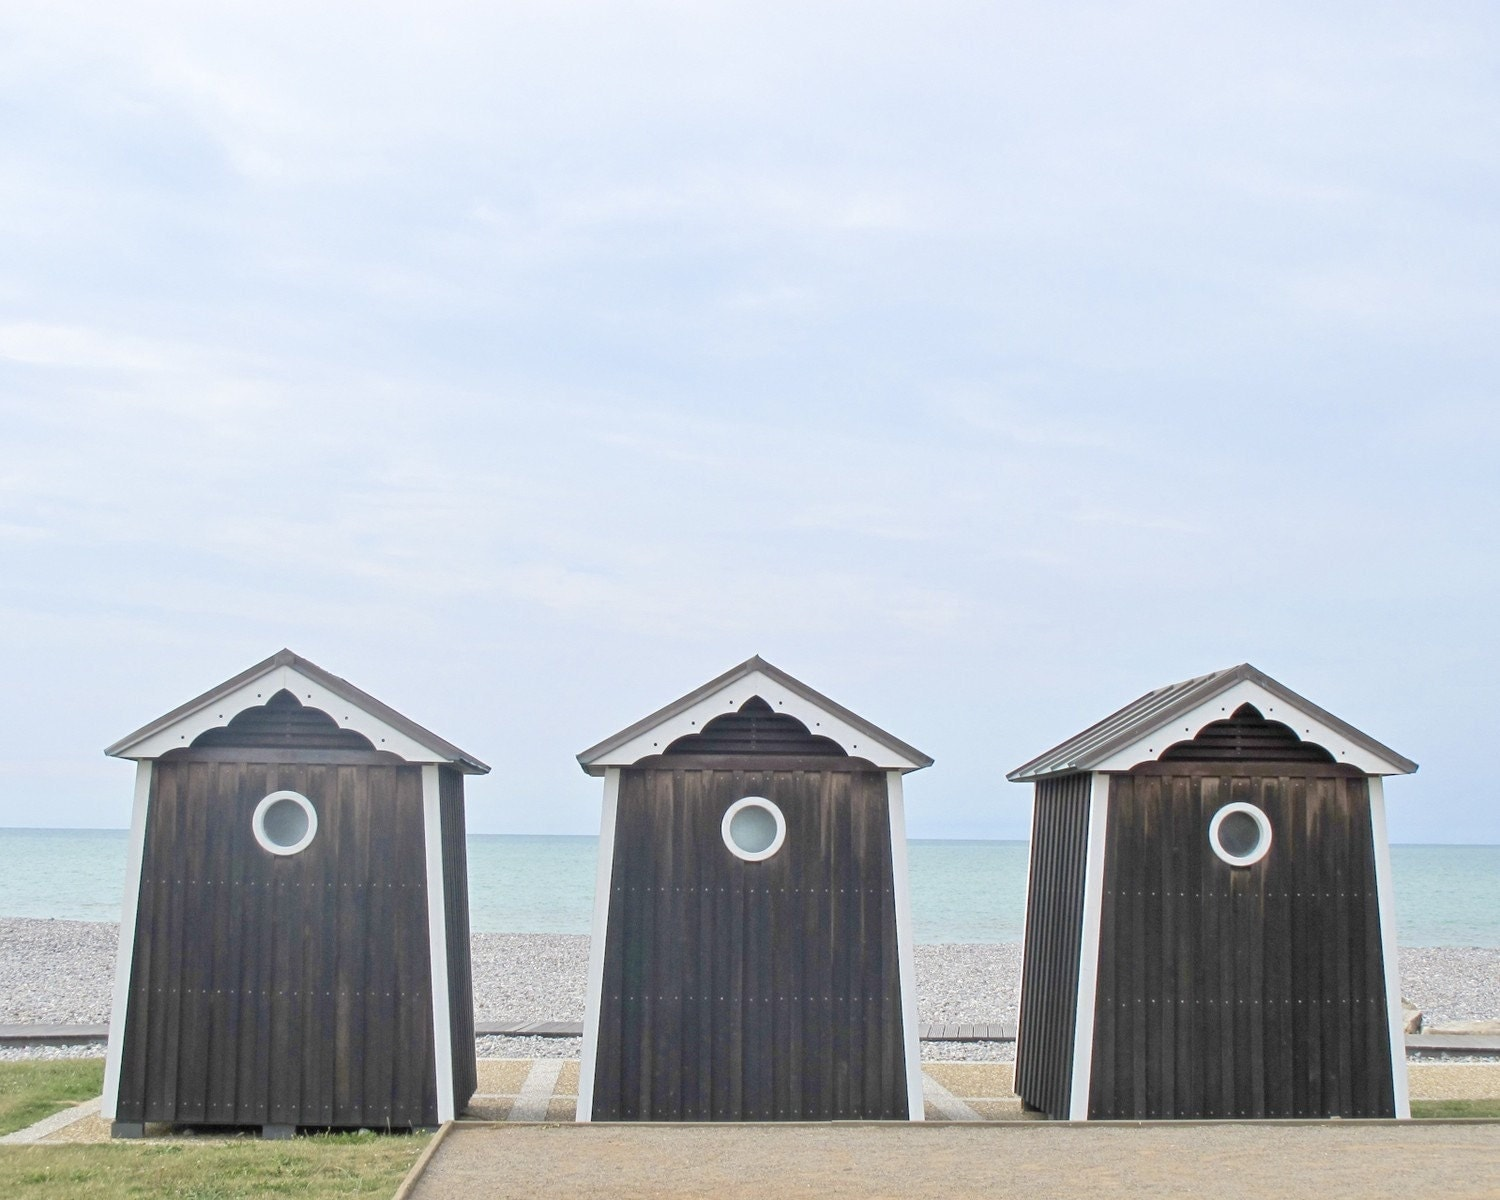 Beach cabins photography normandy france 8 10 french for Beach hut decoration items